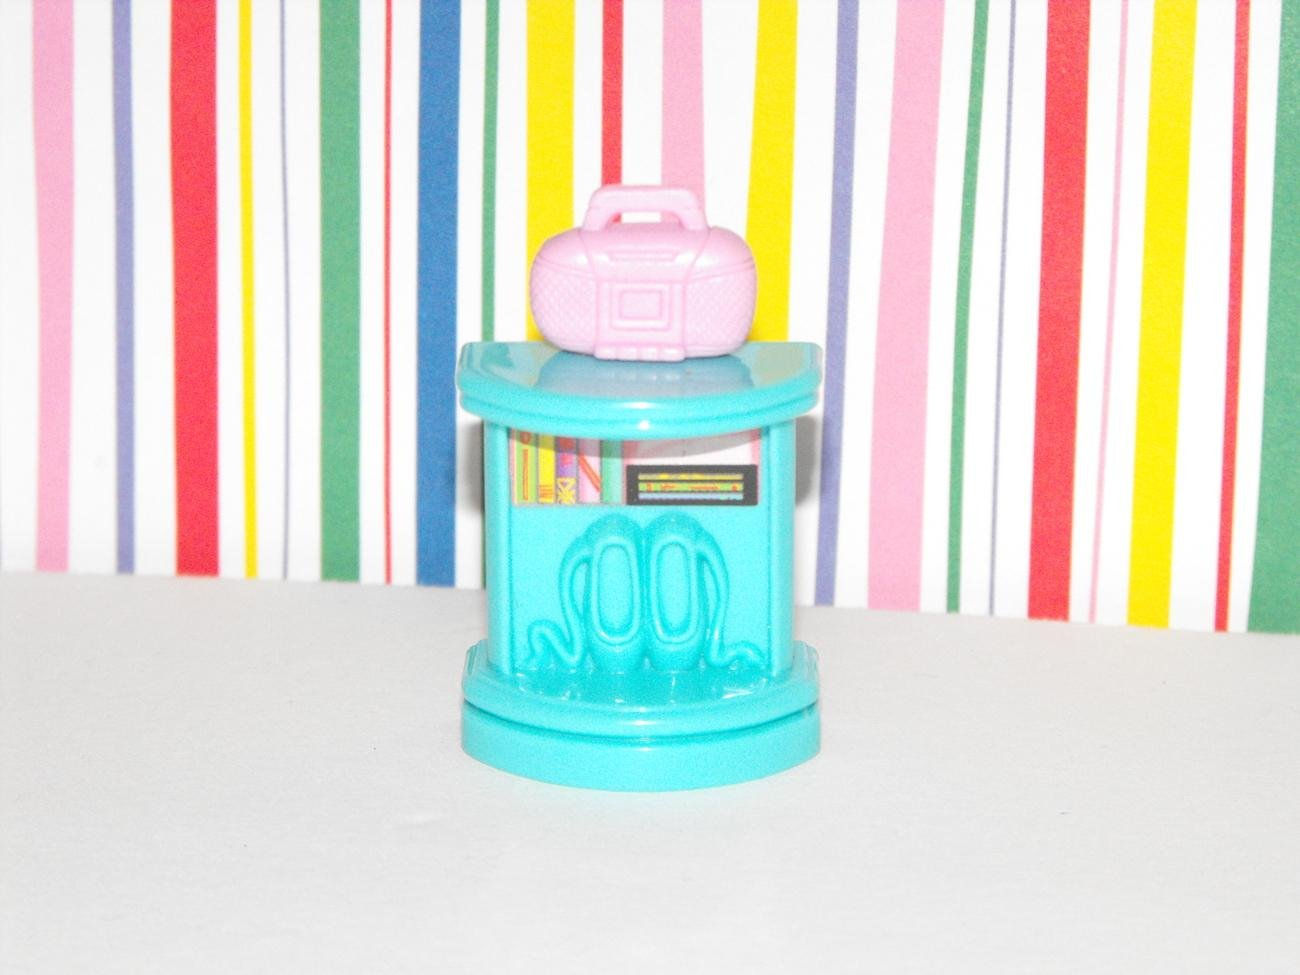 Fisher Price Sweet Streets Dance Studio Radio Part